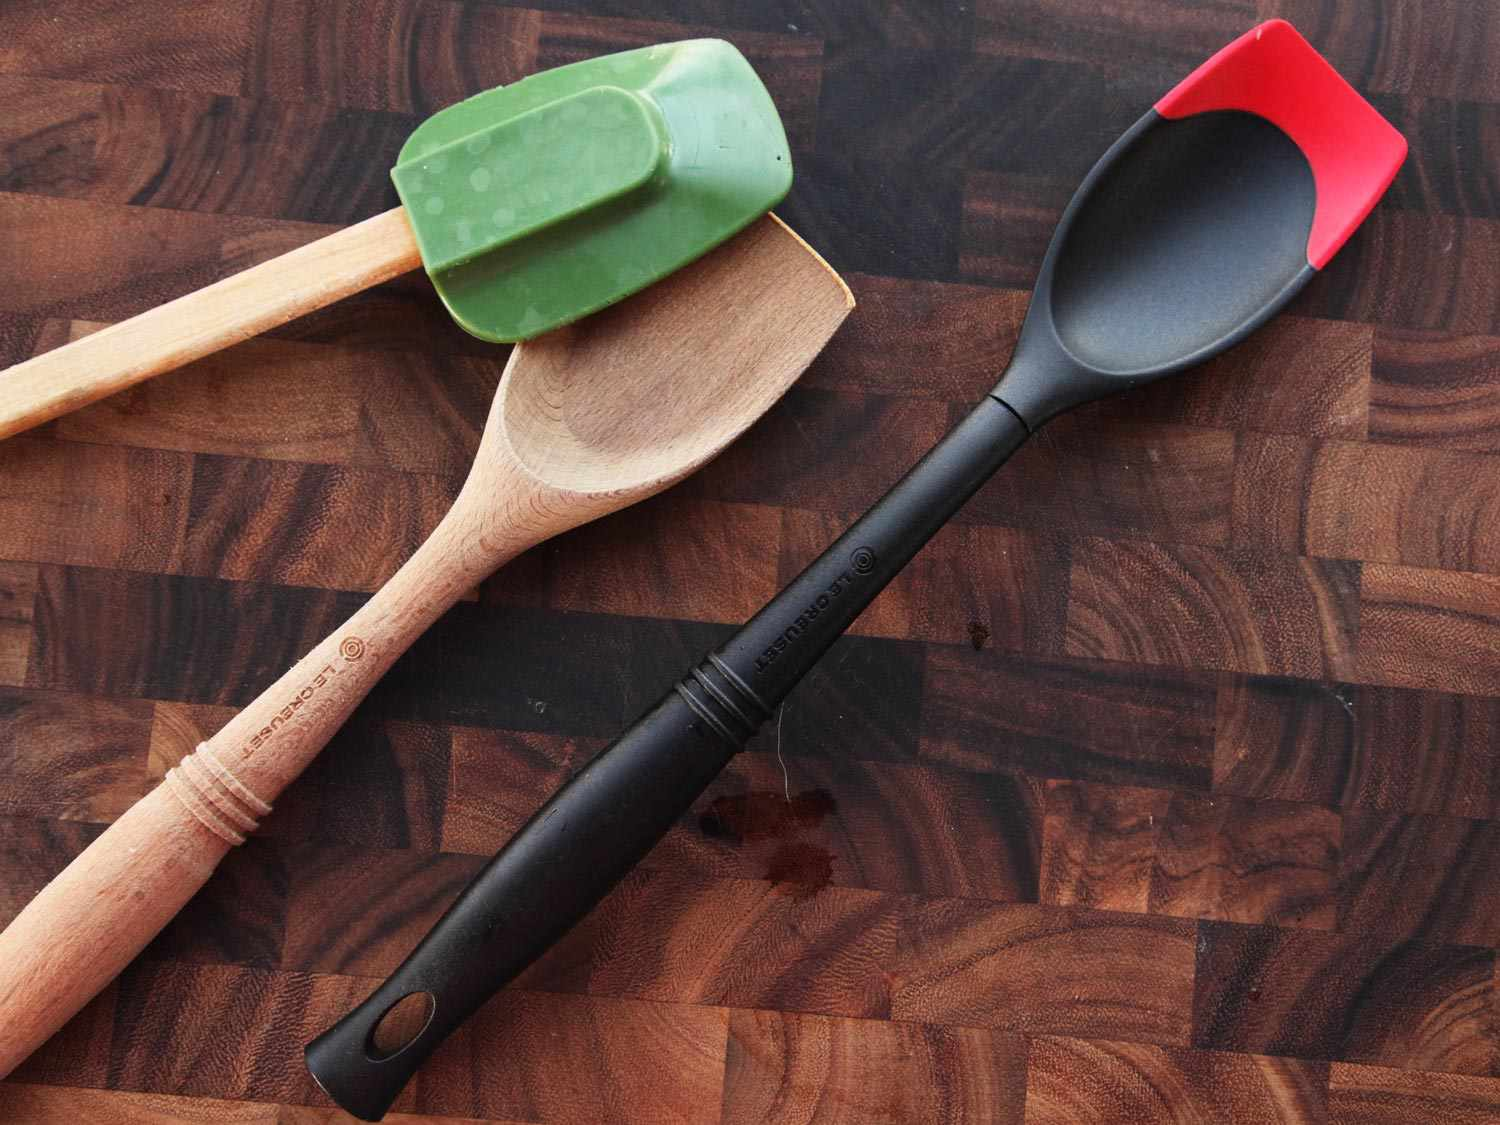 Three kinds of utensils: a spatula with a silicone head and wooden handle, a wooden scraping spoon, and a nylon scraping spoon